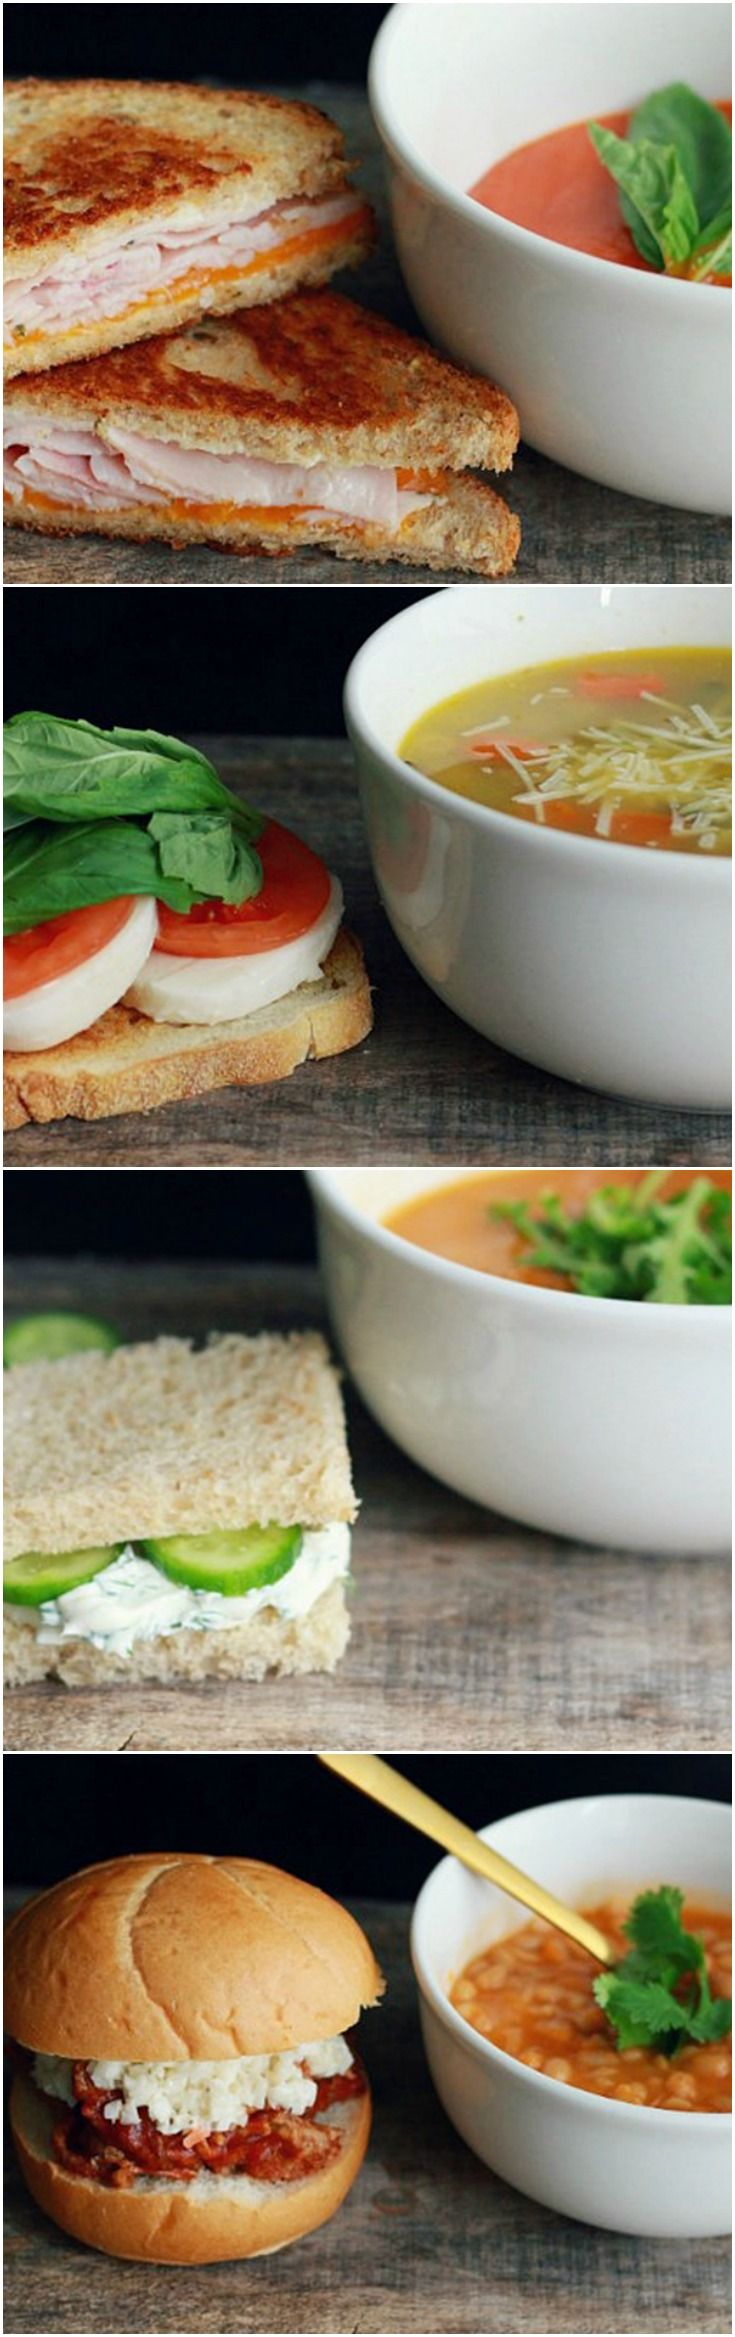 4 Soup and Sandwich Combos You'll Actually Look Forward to at Lunch